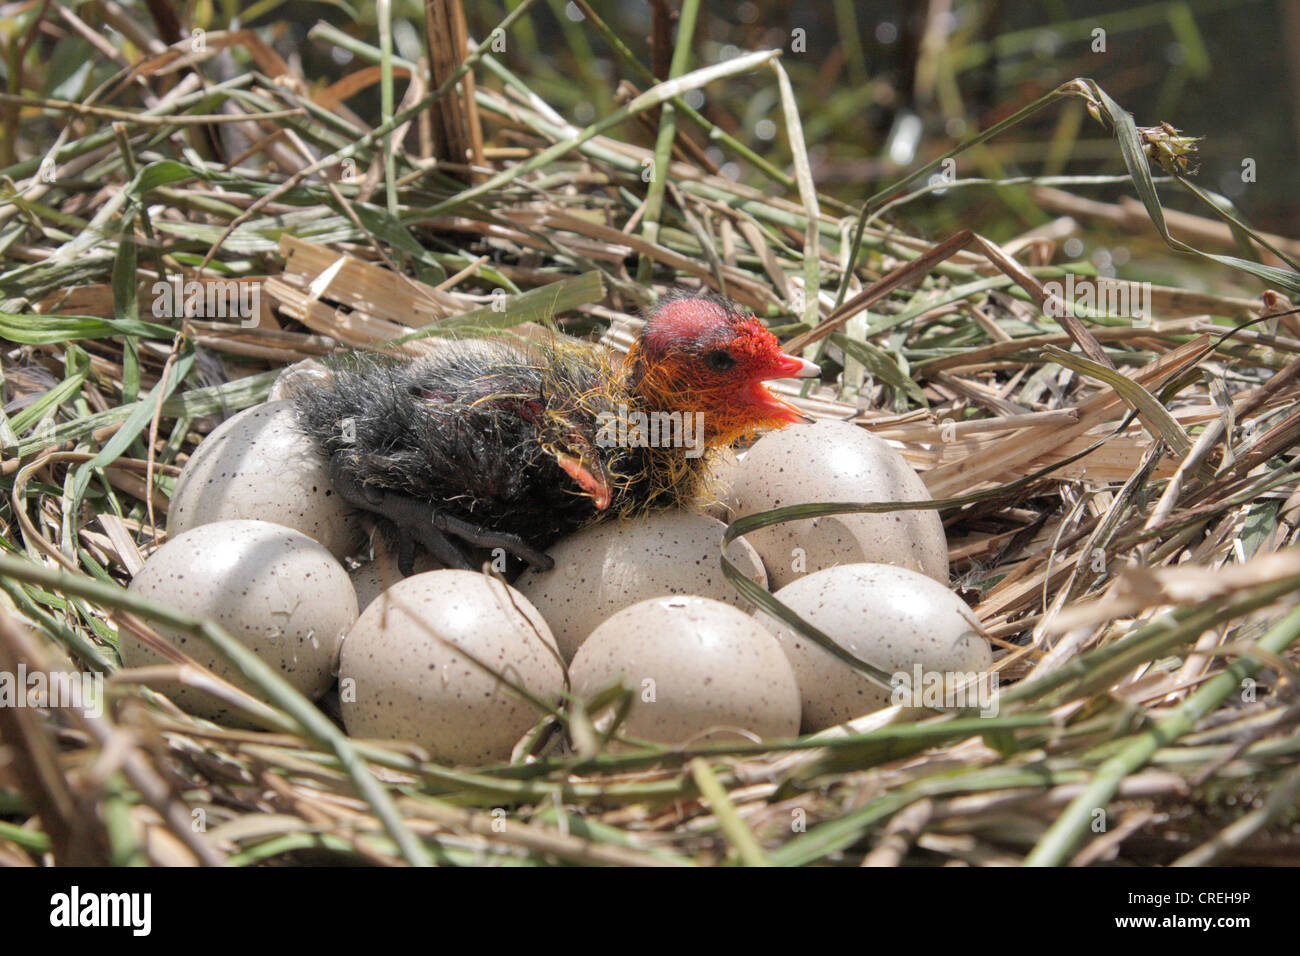 black coot (Fulica atra), nest with eggs and hatched chick - Stock Image